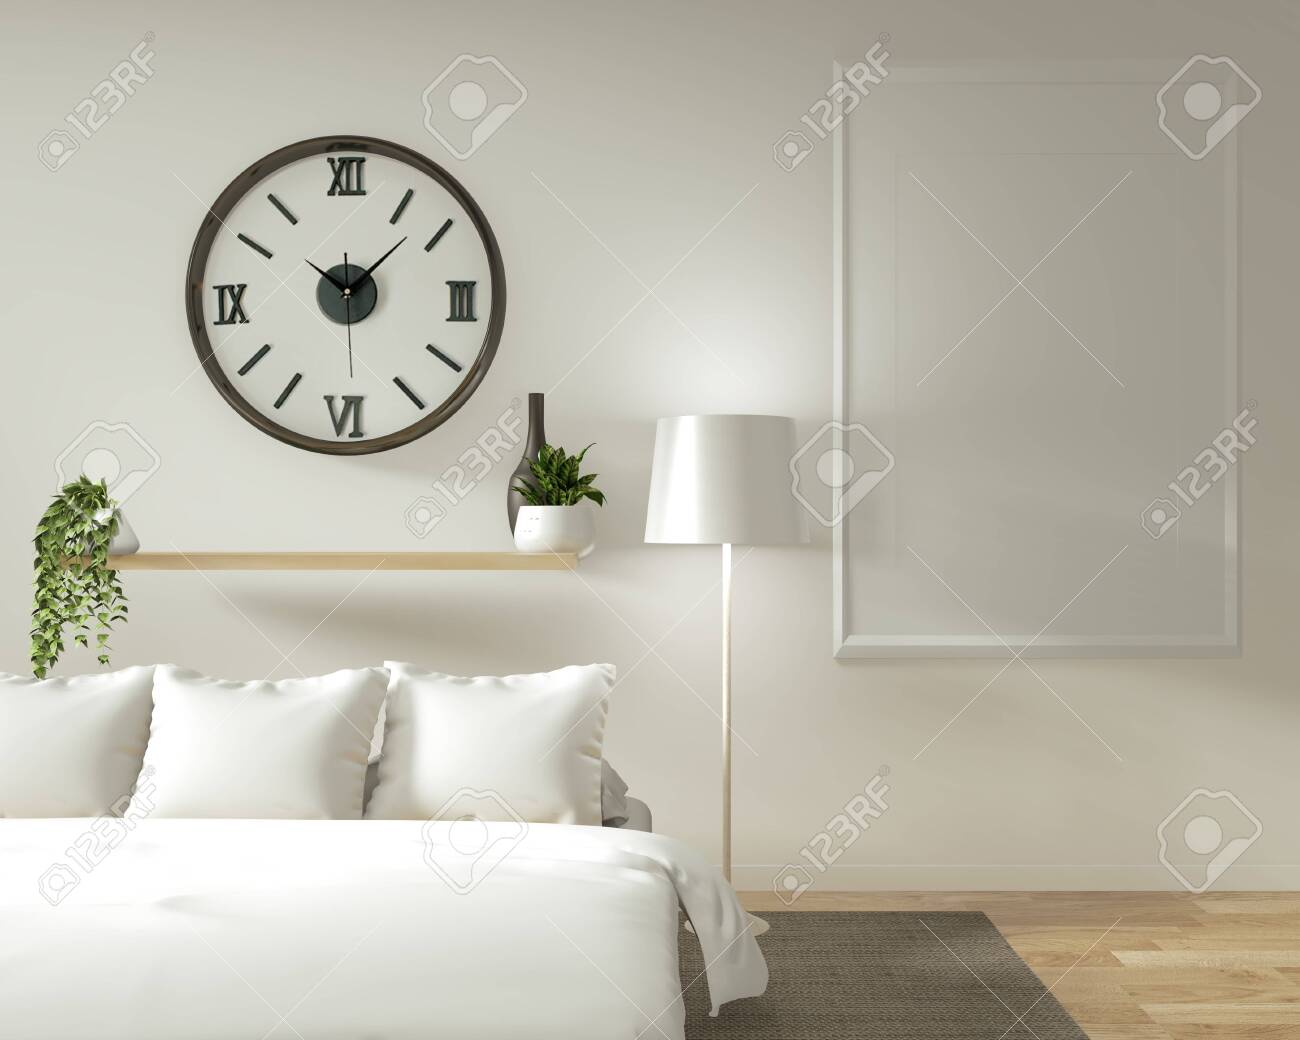 Home interior wall mock up with wooden bed, curtains and decoration..